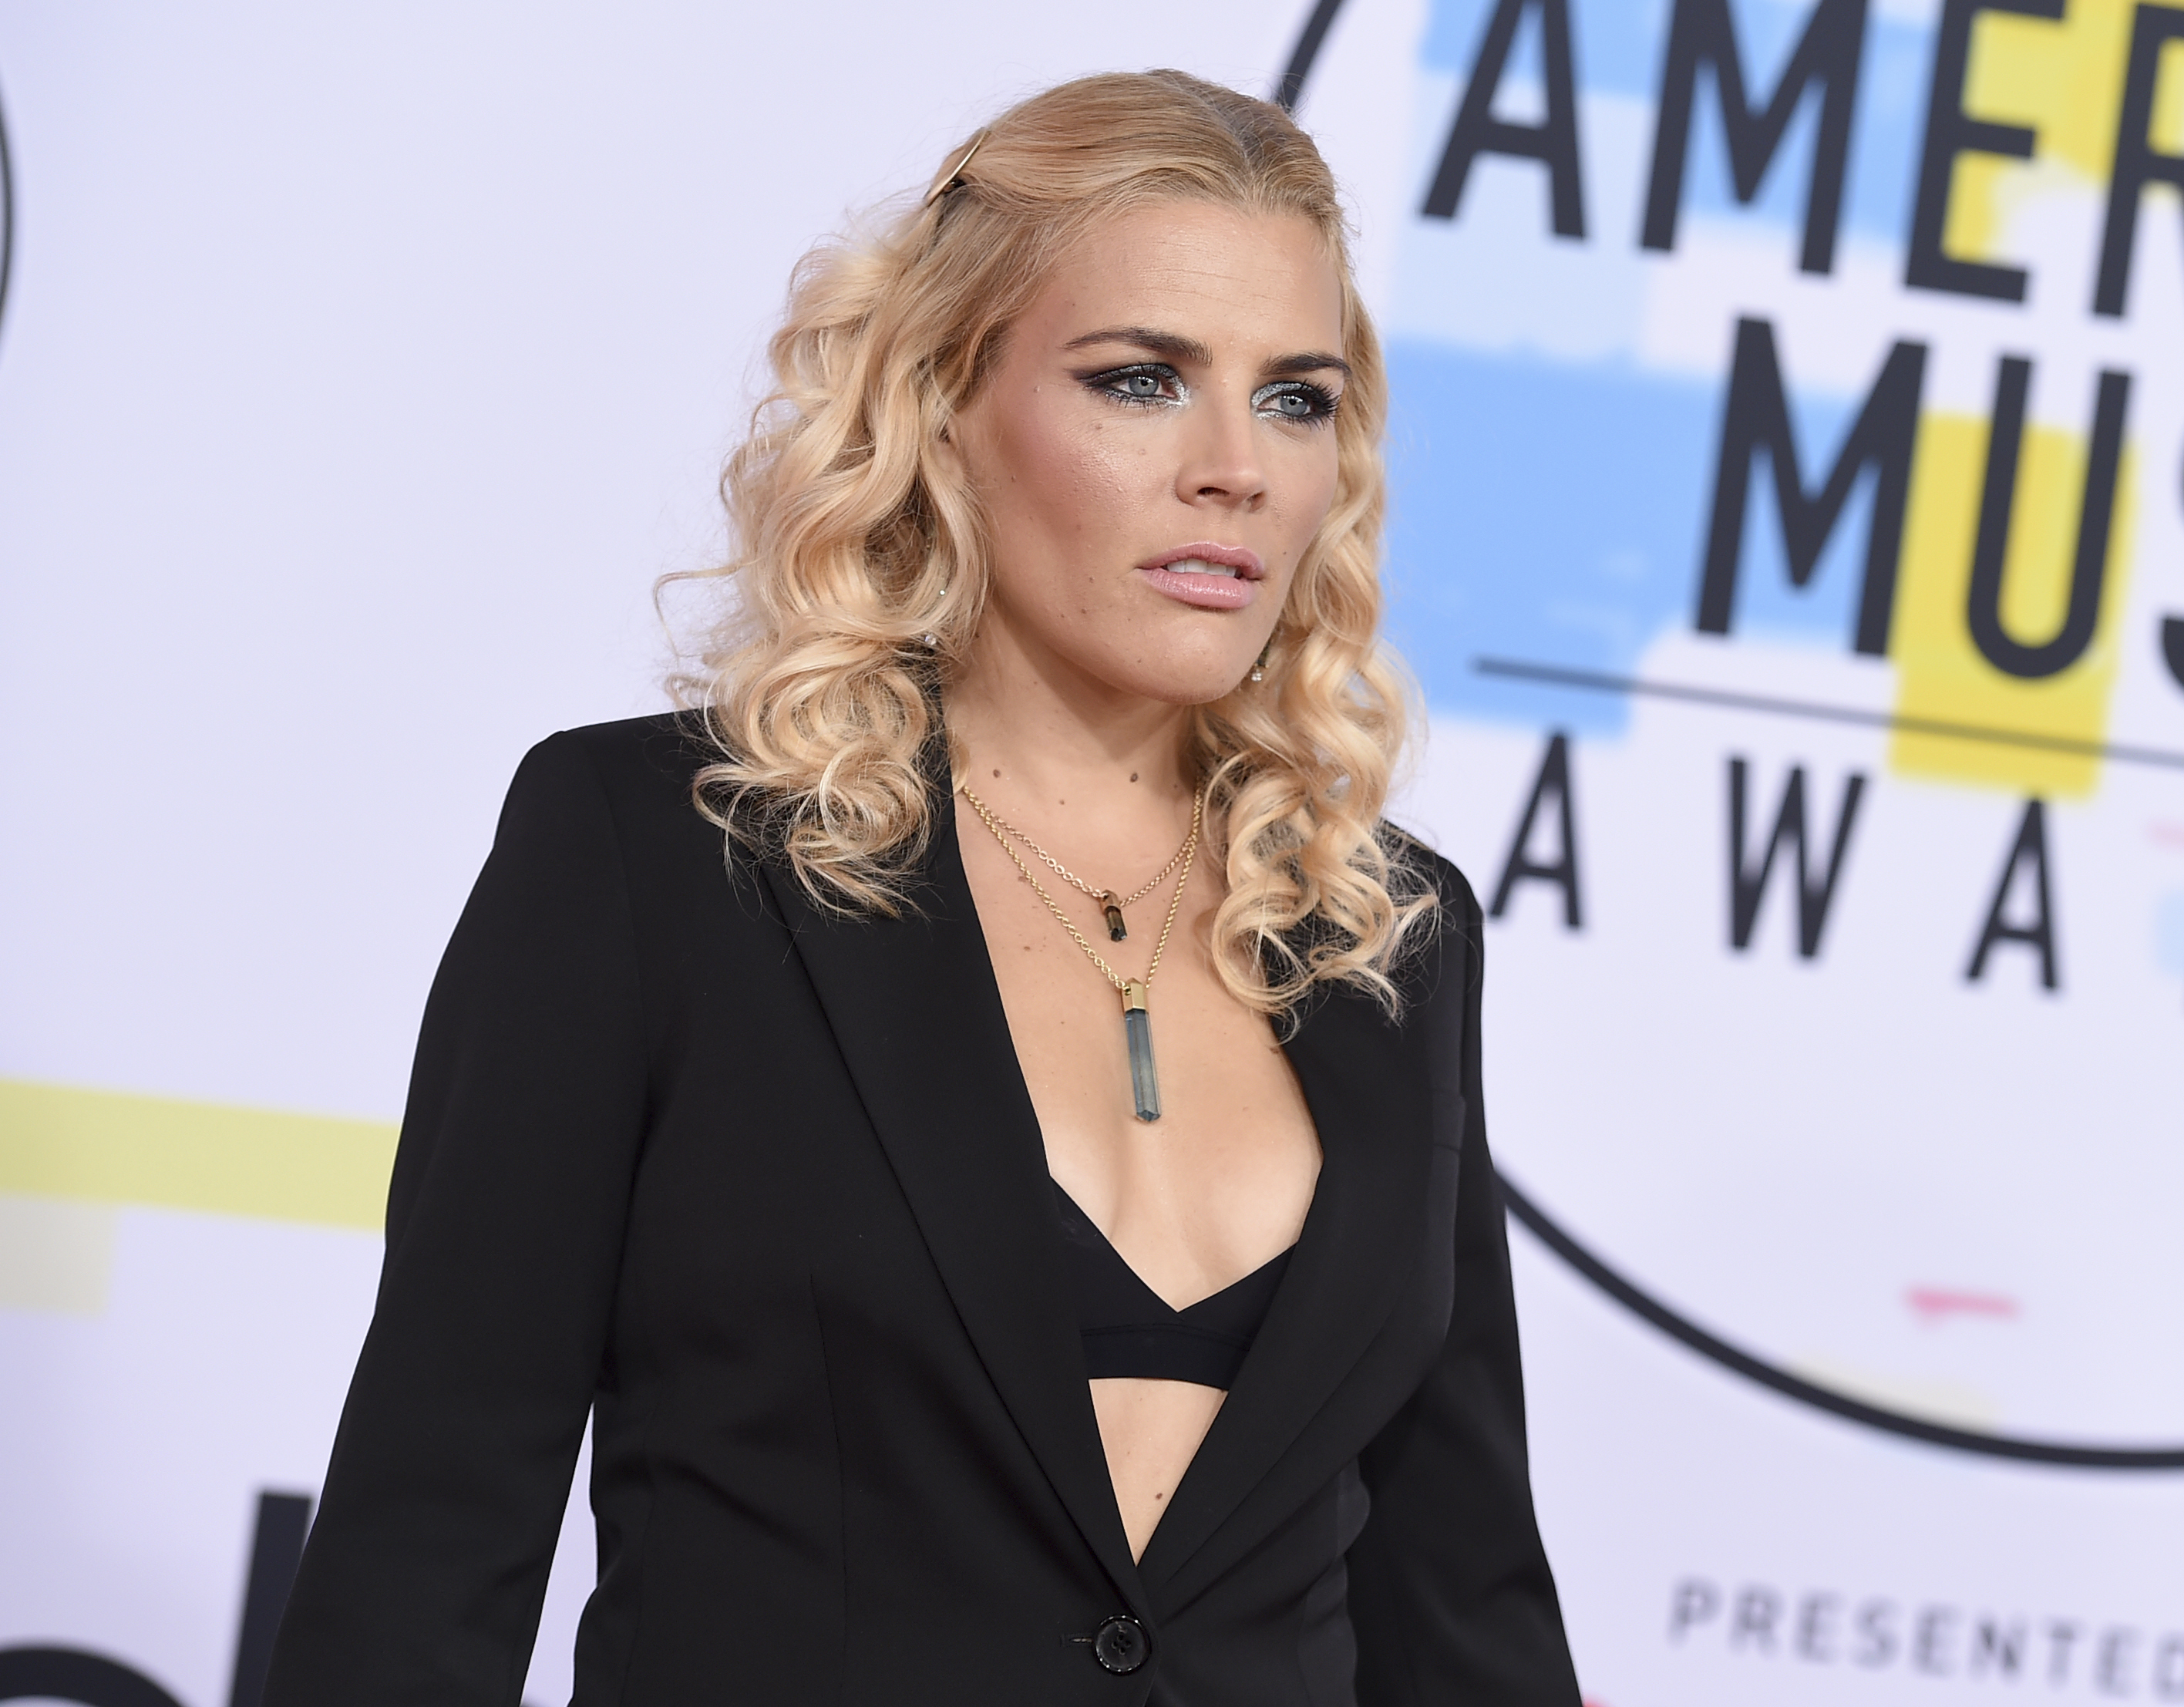 "<div class=""meta image-caption""><div class=""origin-logo origin-image none""><span>none</span></div><span class=""caption-text"">Busy Philipps arrives at the American Music Awards on Tuesday, Oct. 9, 2018, at the Microsoft Theater in Los Angeles. (Jordan Strauss/Invision/AP)</span></div>"